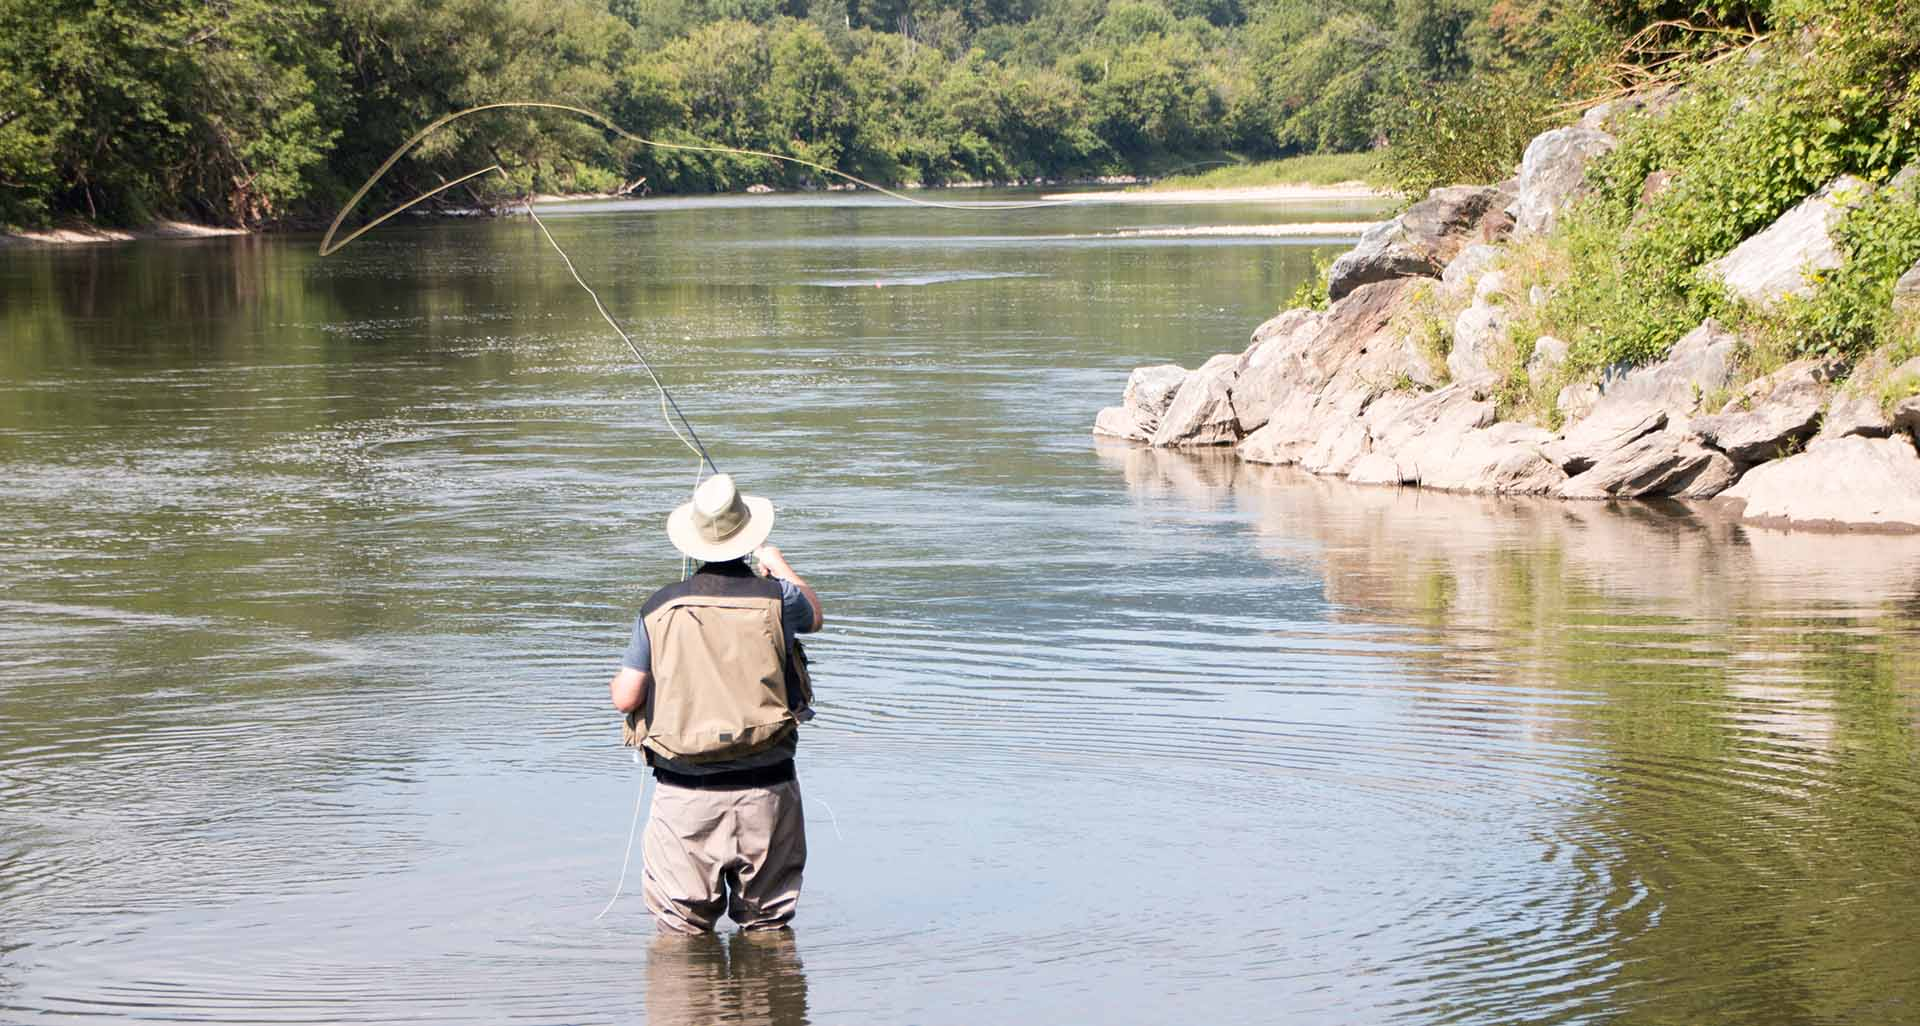 A man stands in a river wearing waders and casting a fishing pole.